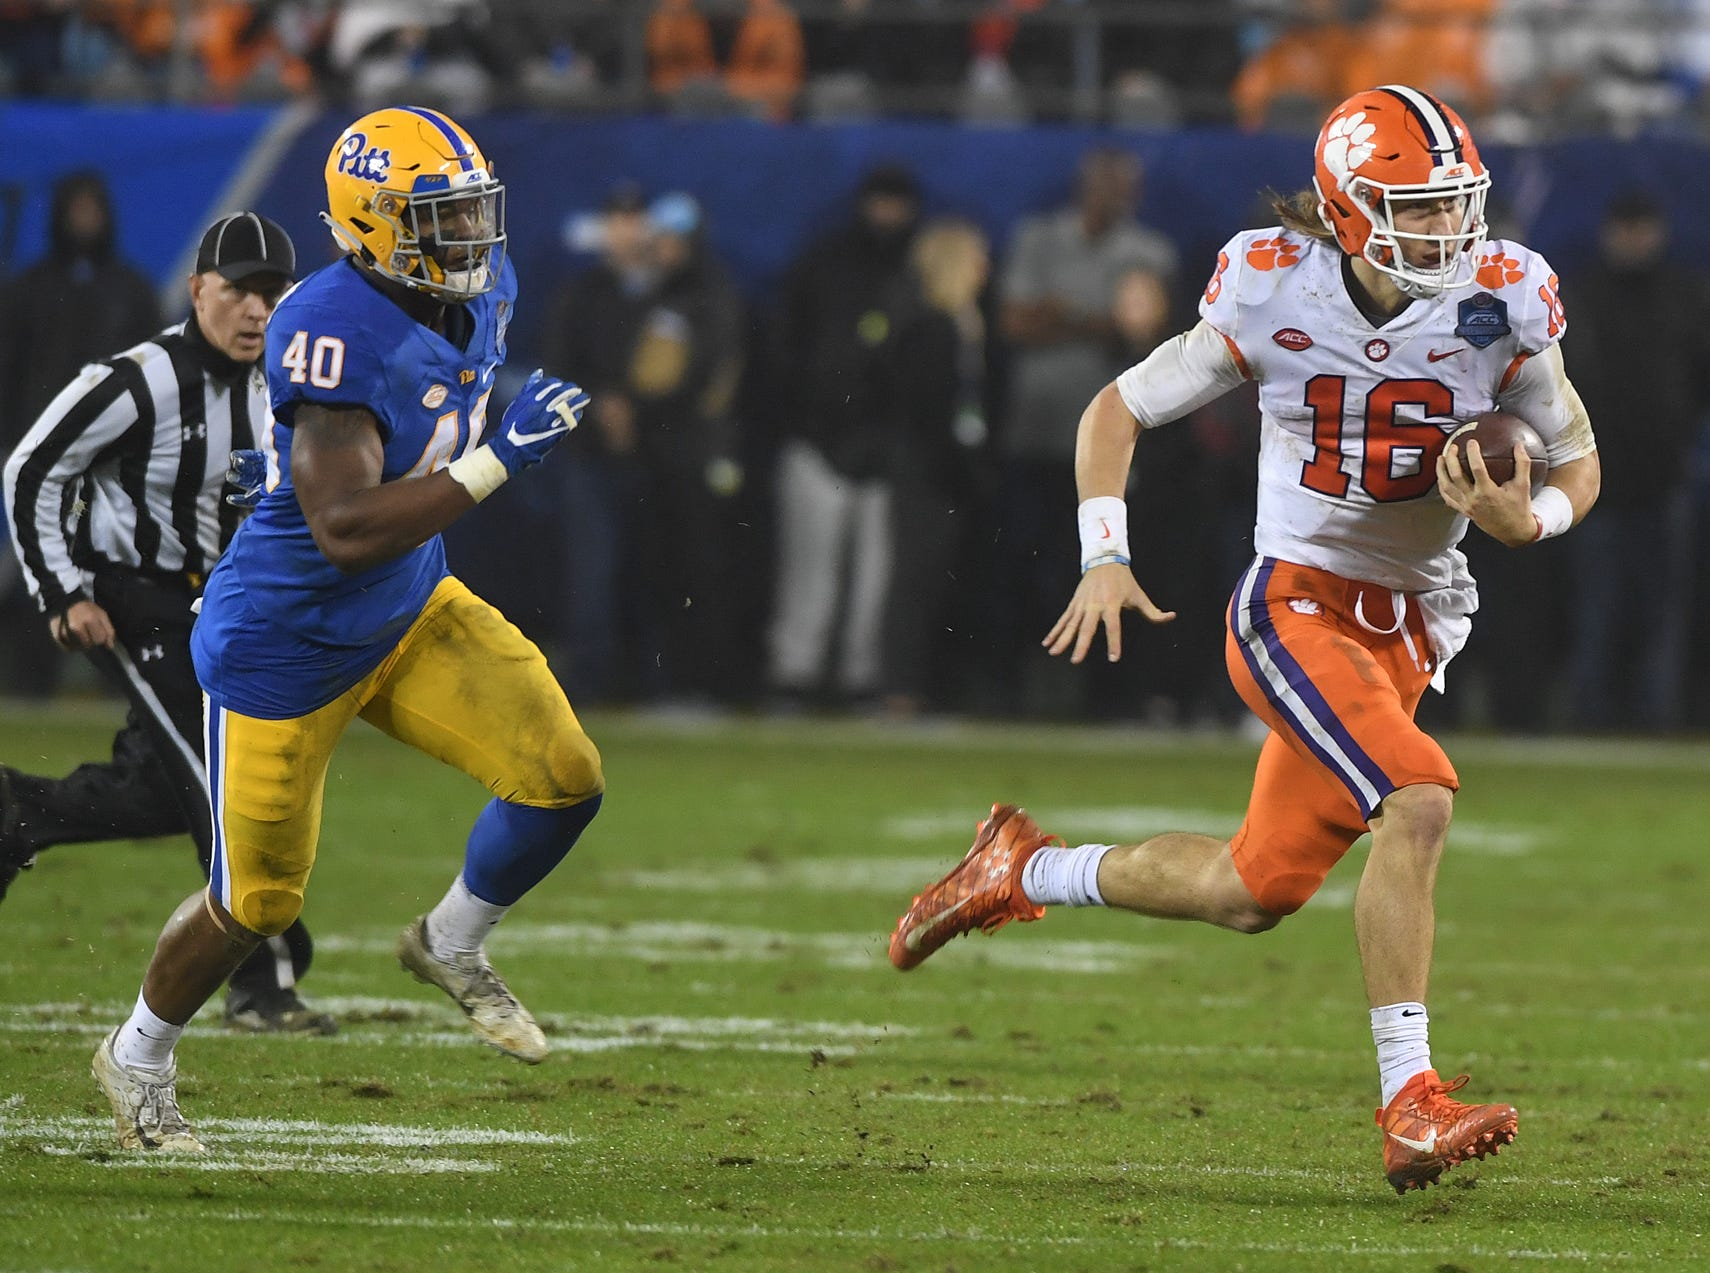 Clemson quarterback Trevor Lawrence (16) scrambles past Pittsburgh defensive end James Folston Jr. (40) during the 3rd quarter of the Dr. Pepper ACC Championship at Bank of America Stadium in Charlotte, N.C. Saturday, December 1, 2018.